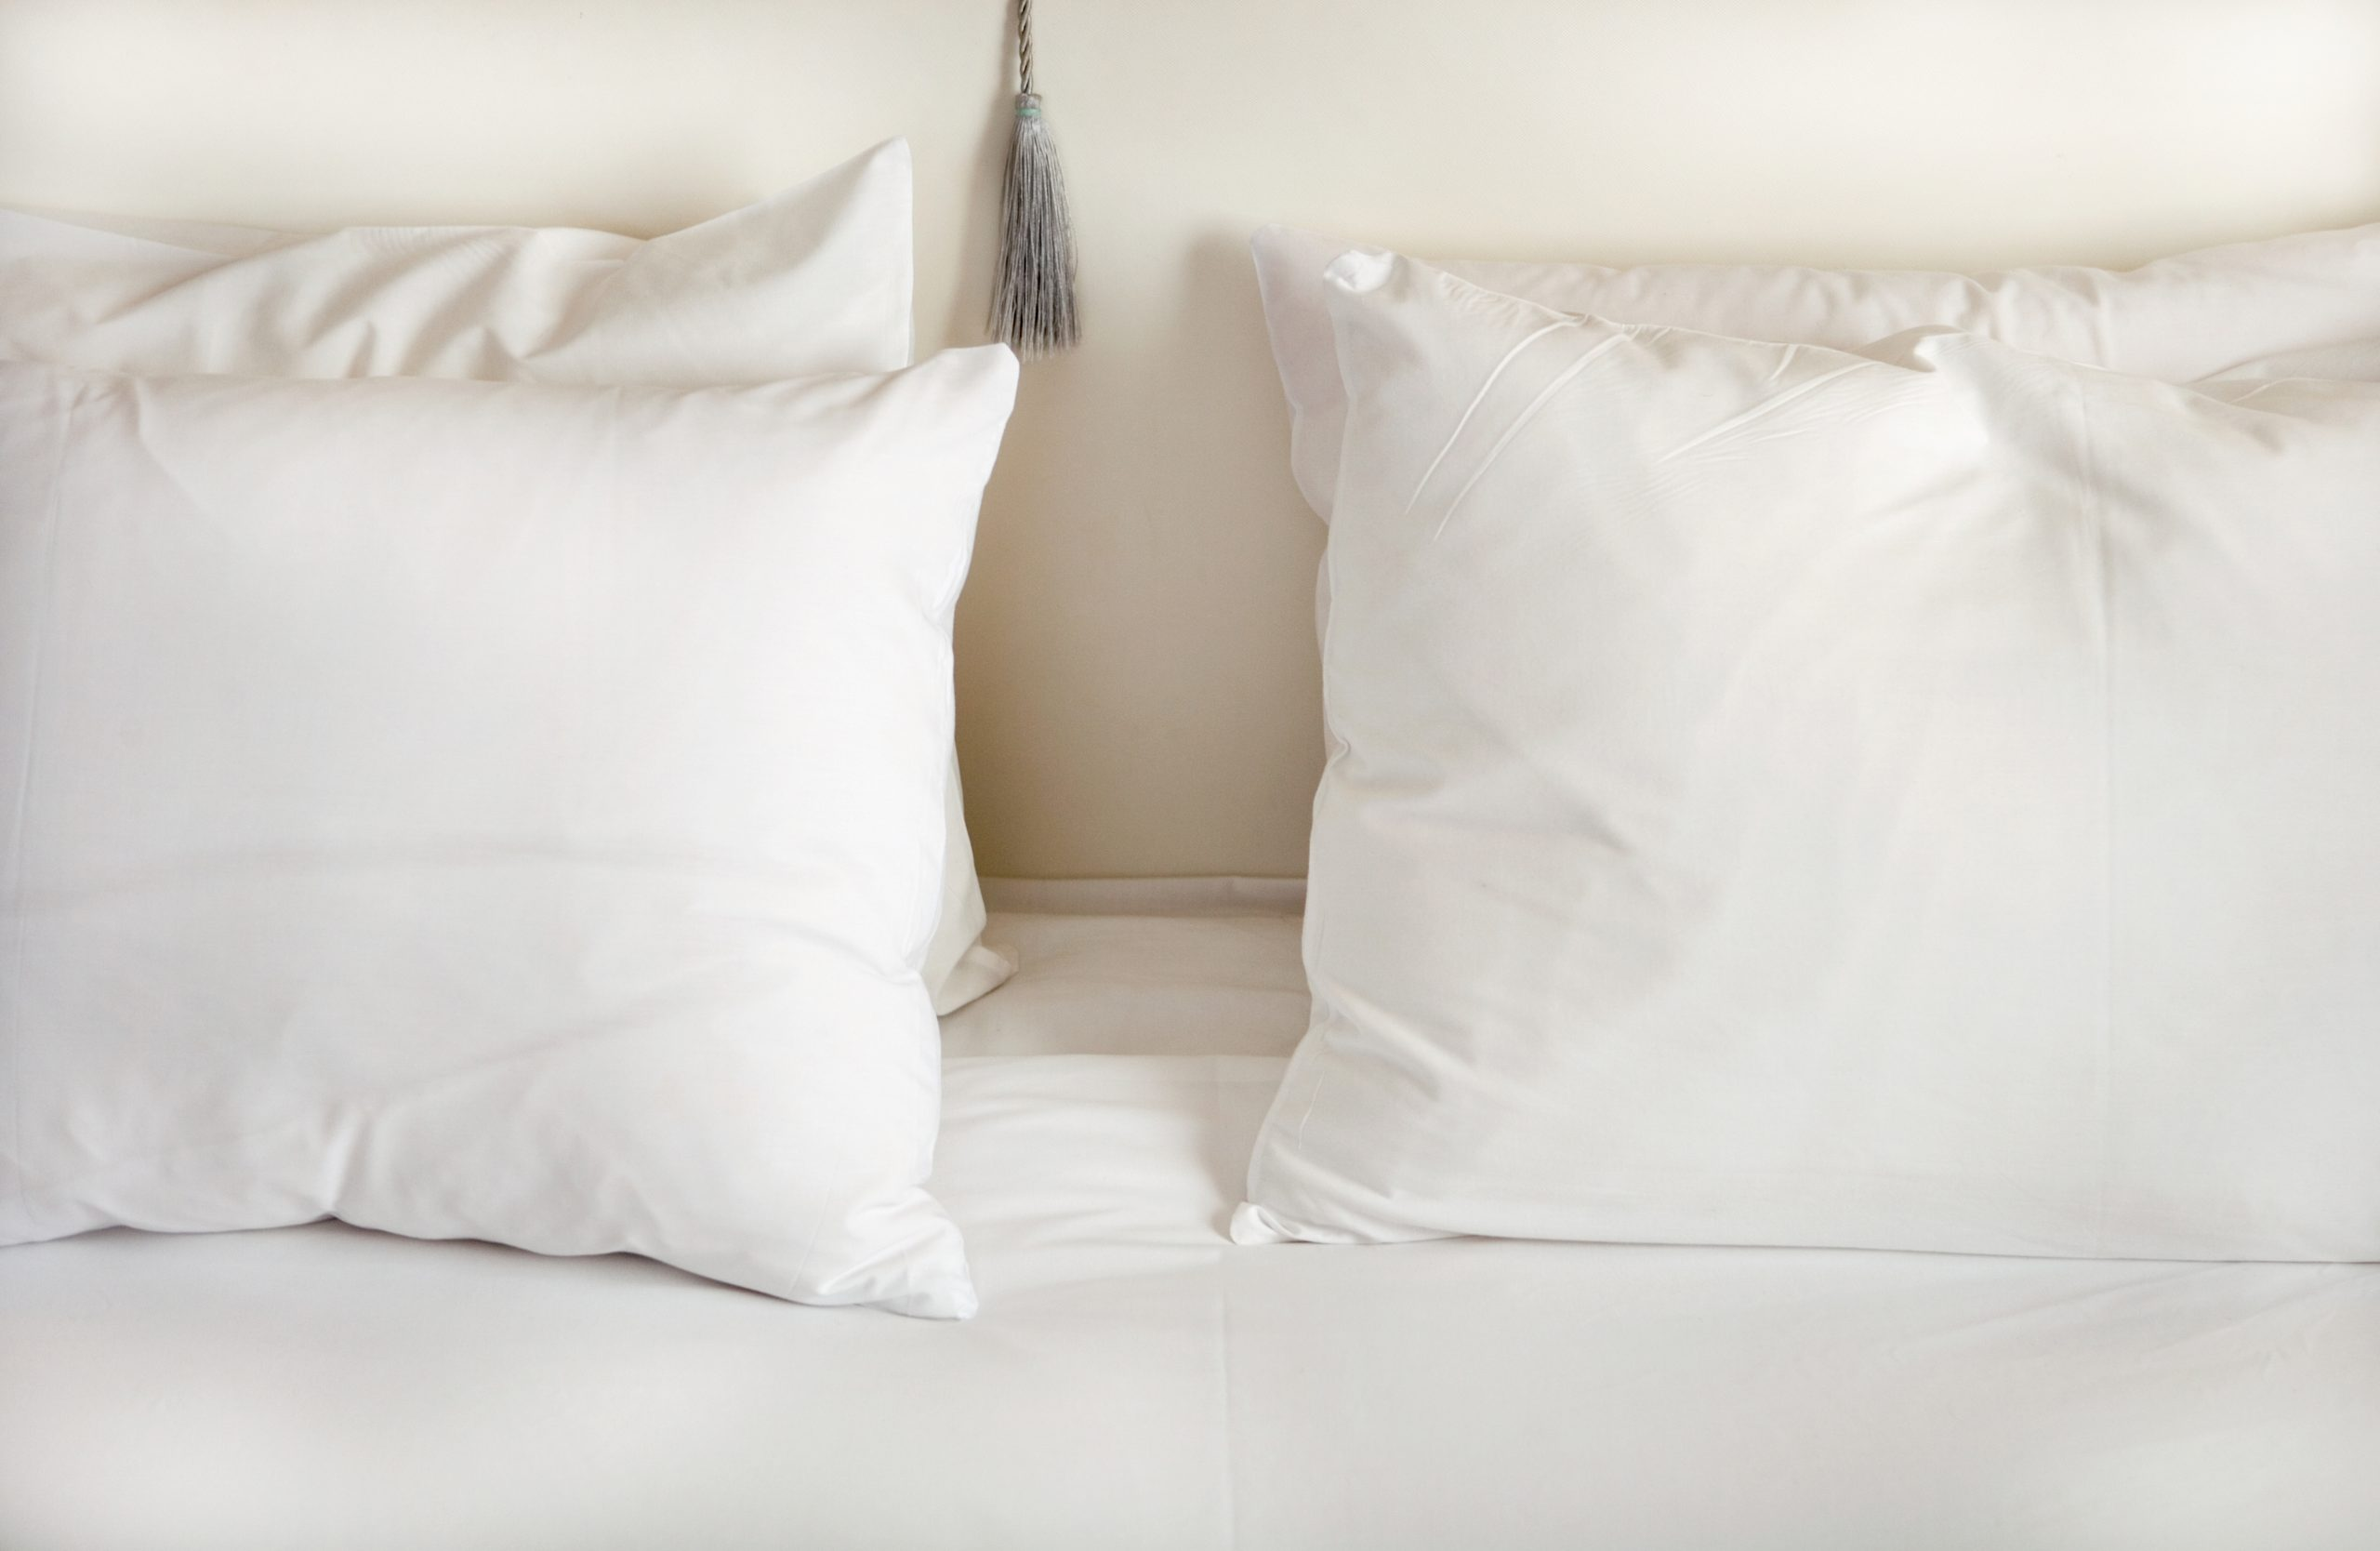 It's time to replace your old pillows! Bed Bath & Beyond has them on sale